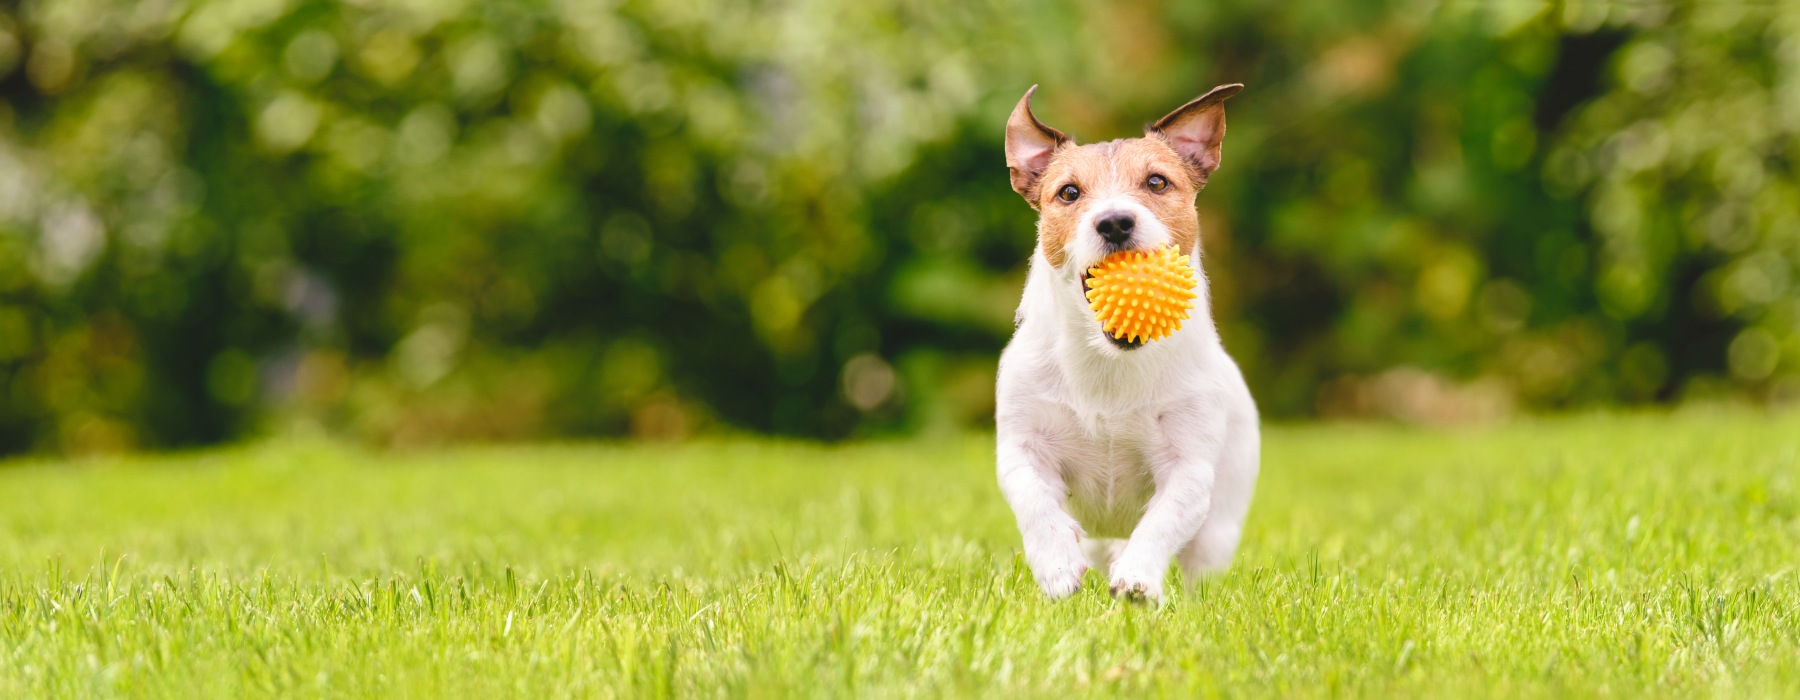 Dog running in grass park with ball